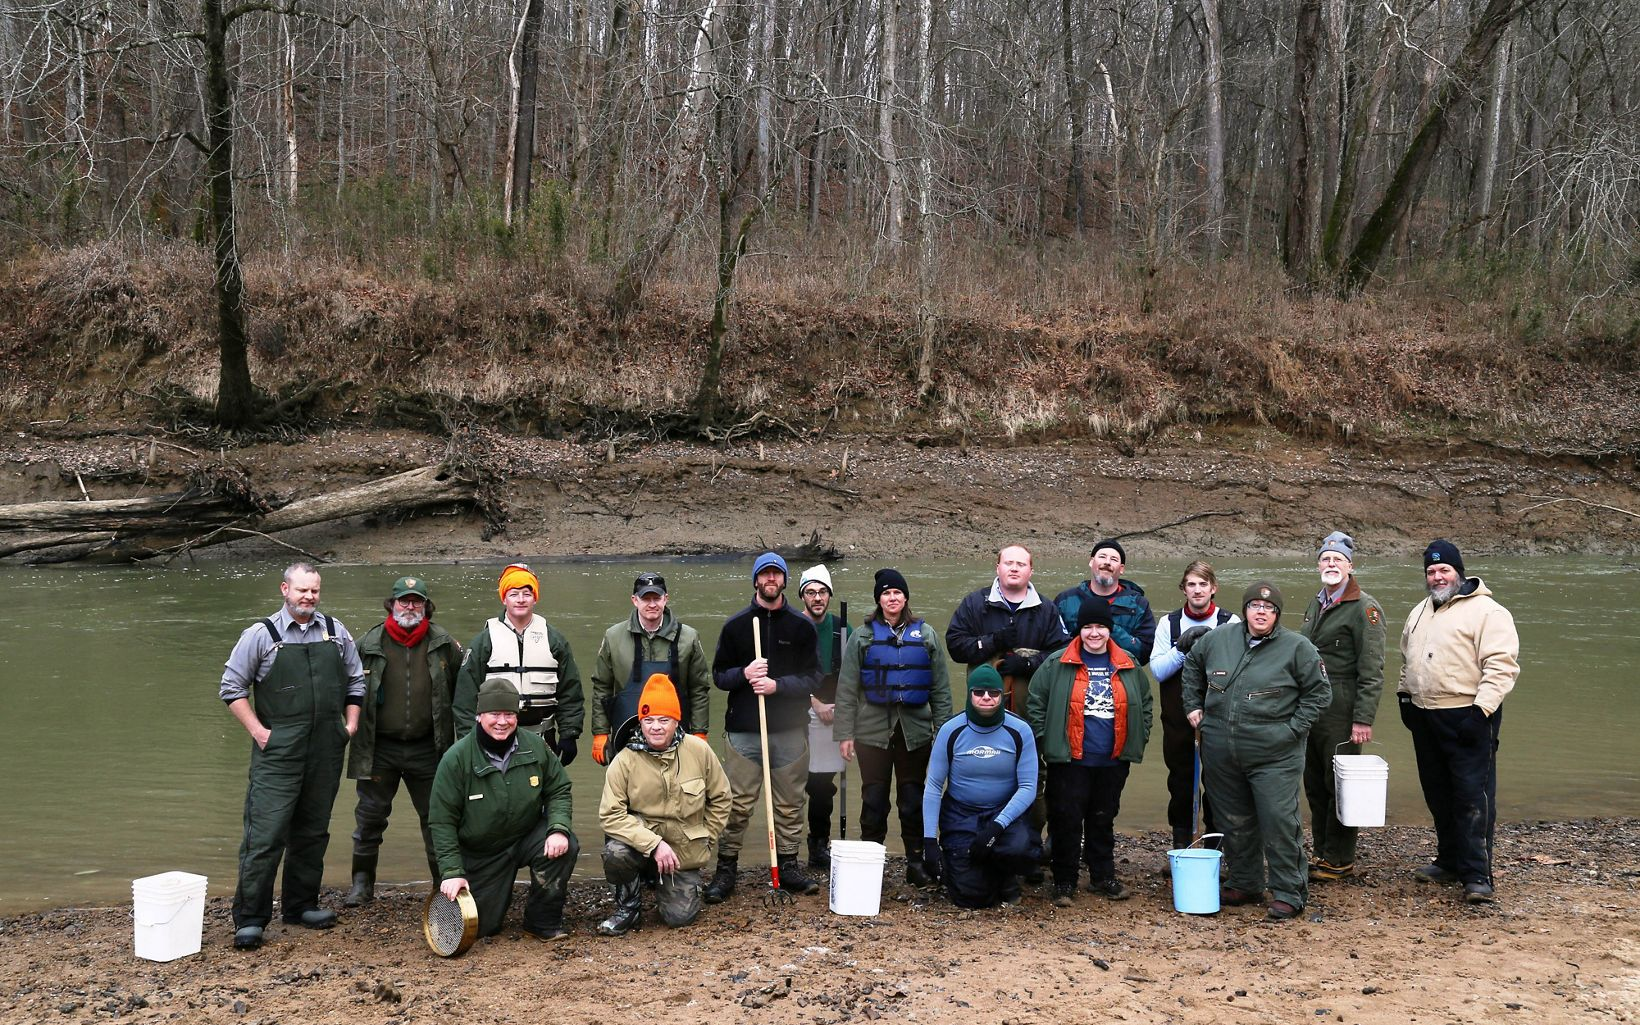 A group of volunteers poses with buckets and tools.